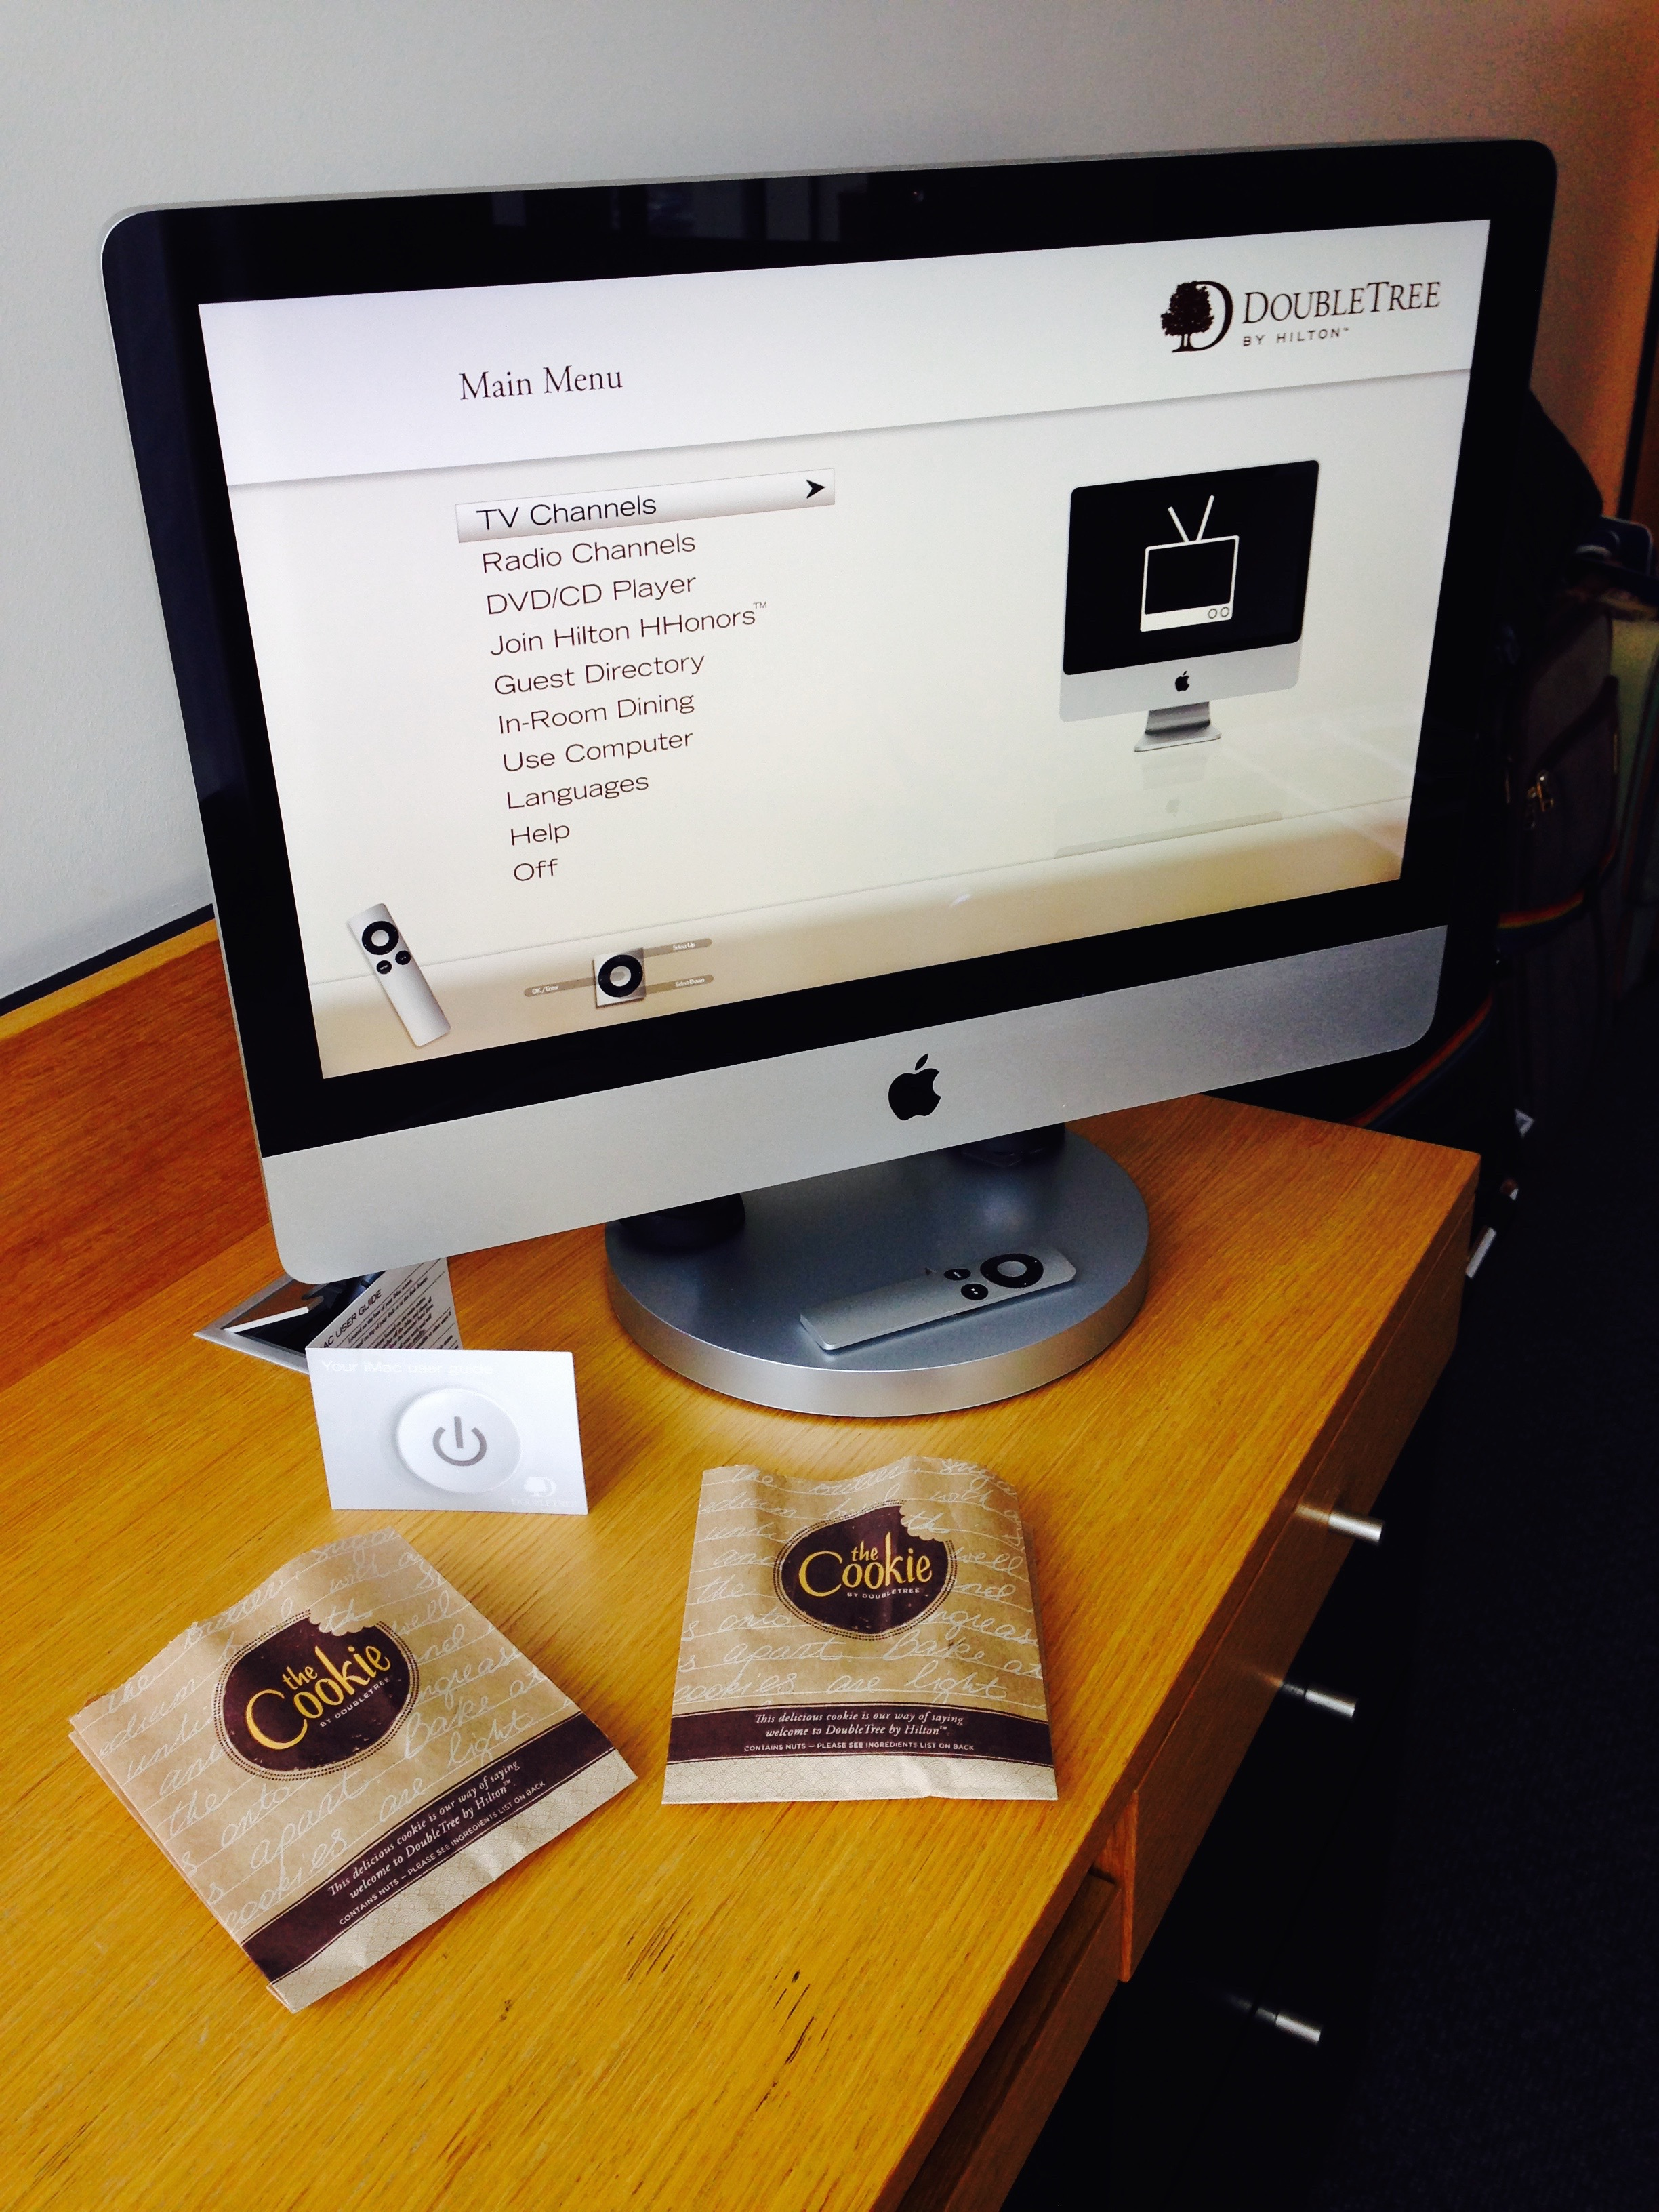 Doubletree by Hilton Amsterdam Centraal Station iMac